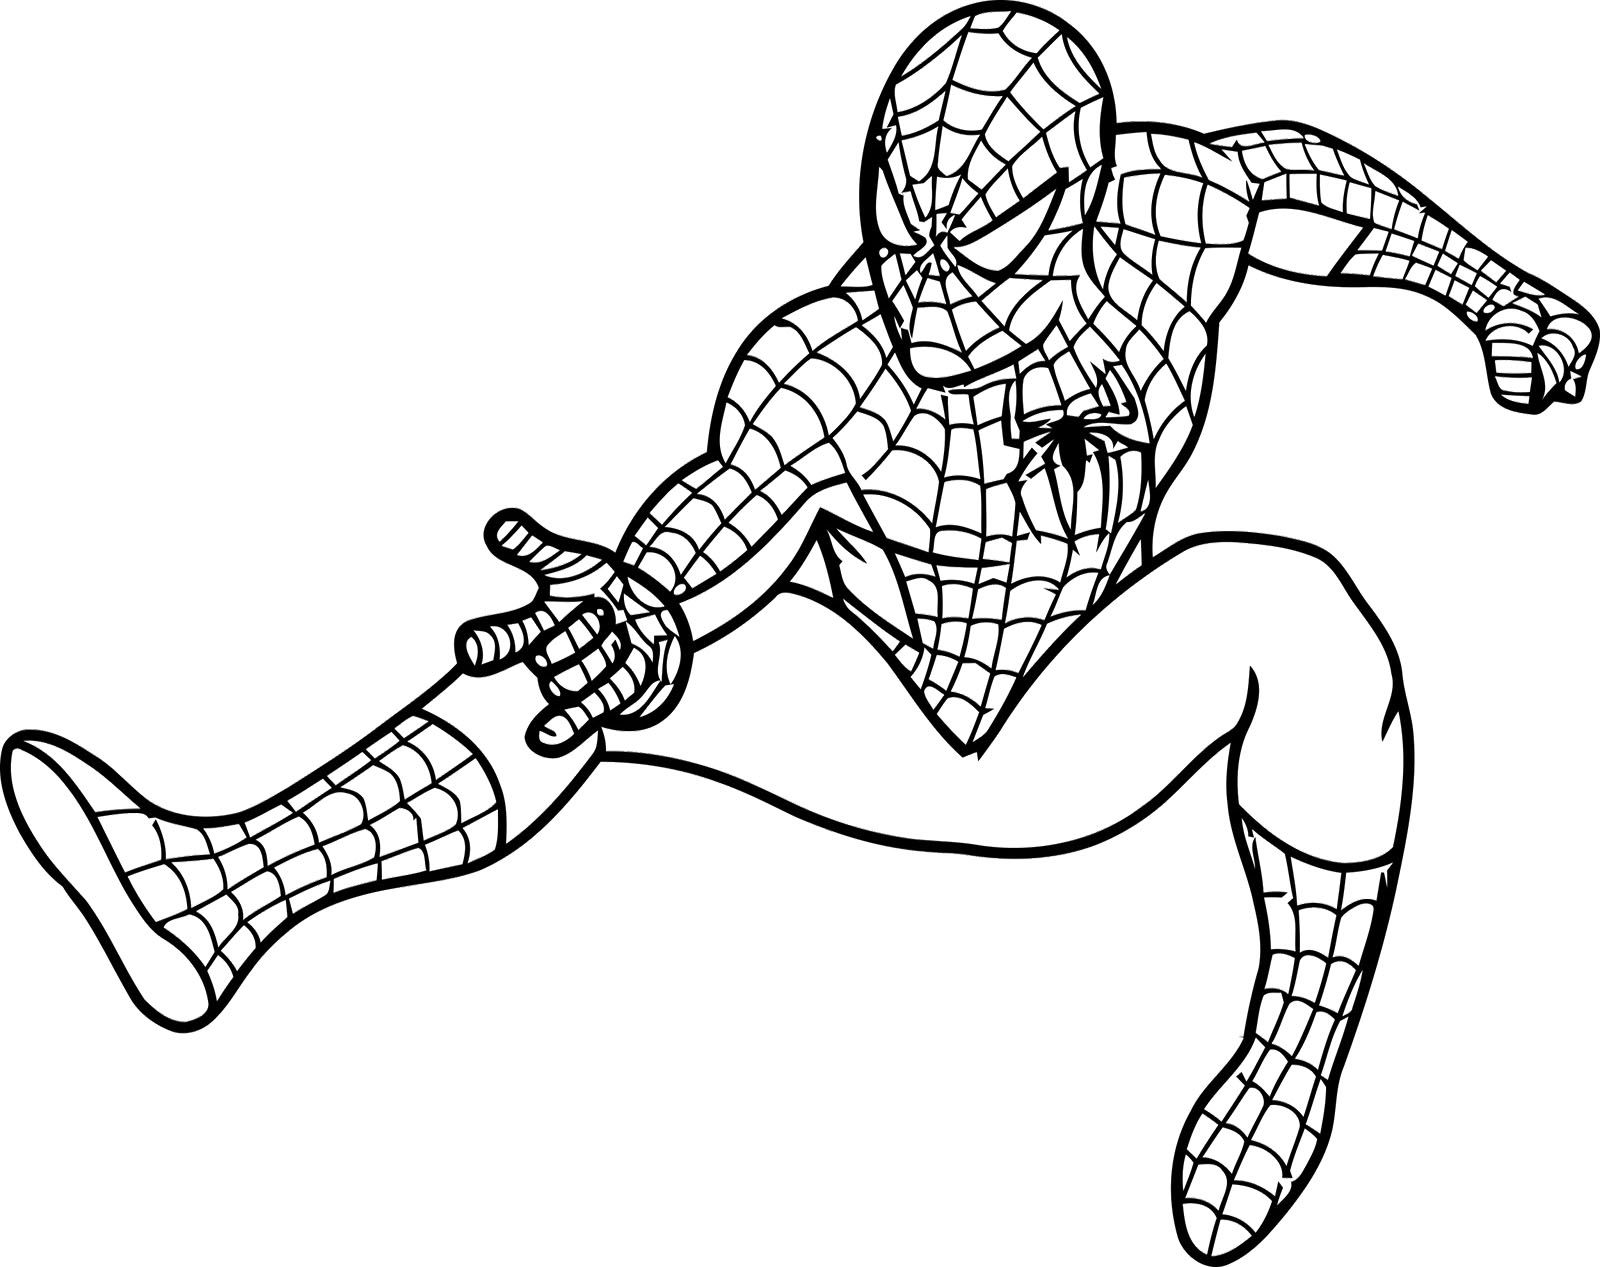 graphic relating to Spiderman Printable Coloring Pages known as Spiderman spider guy black and white clipart clipartfest 2